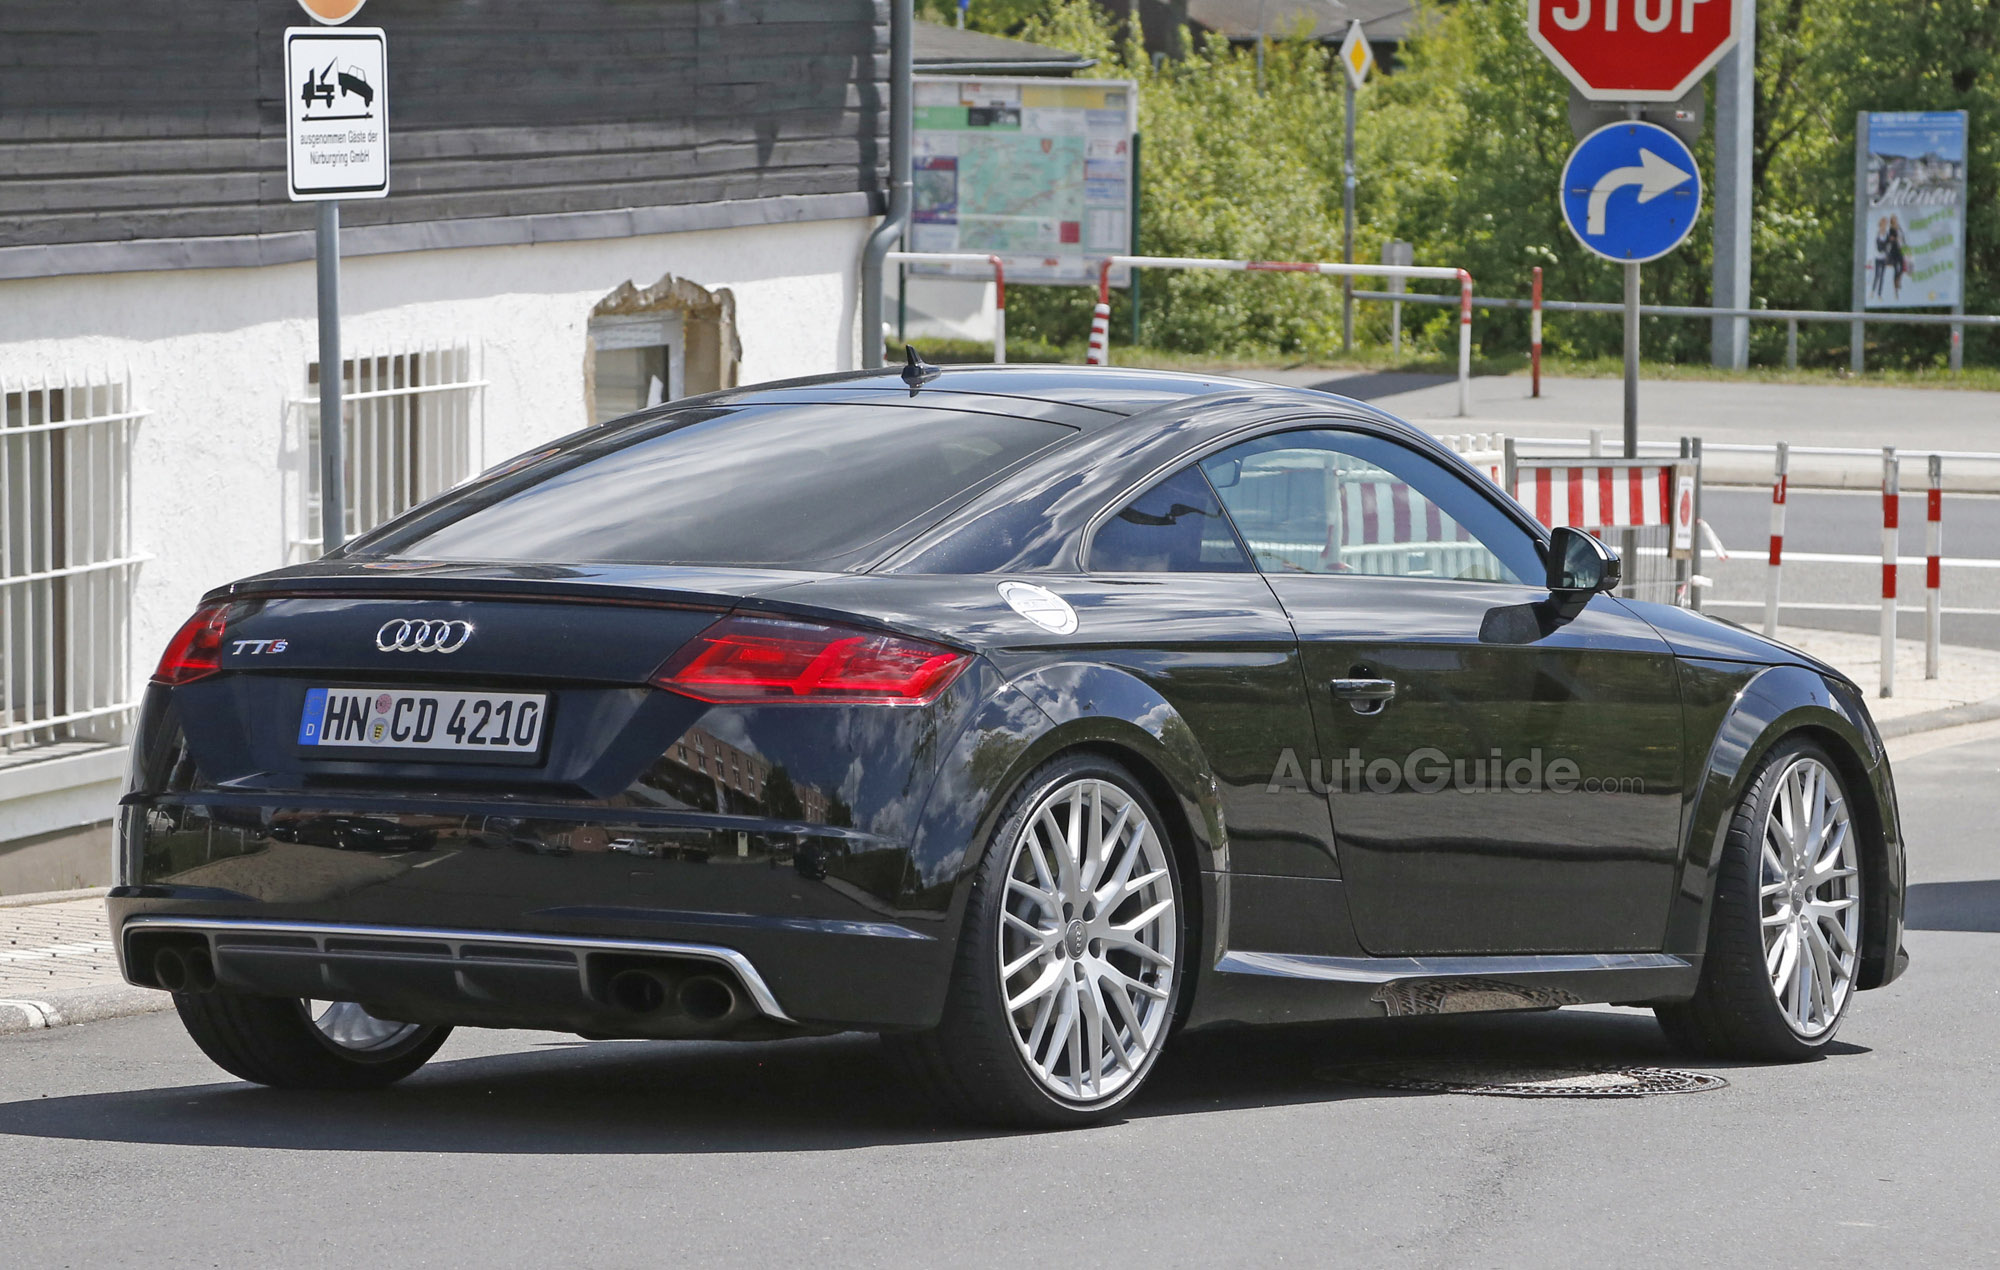 2016 Audi Tt Rs Spy Photo Rear 04